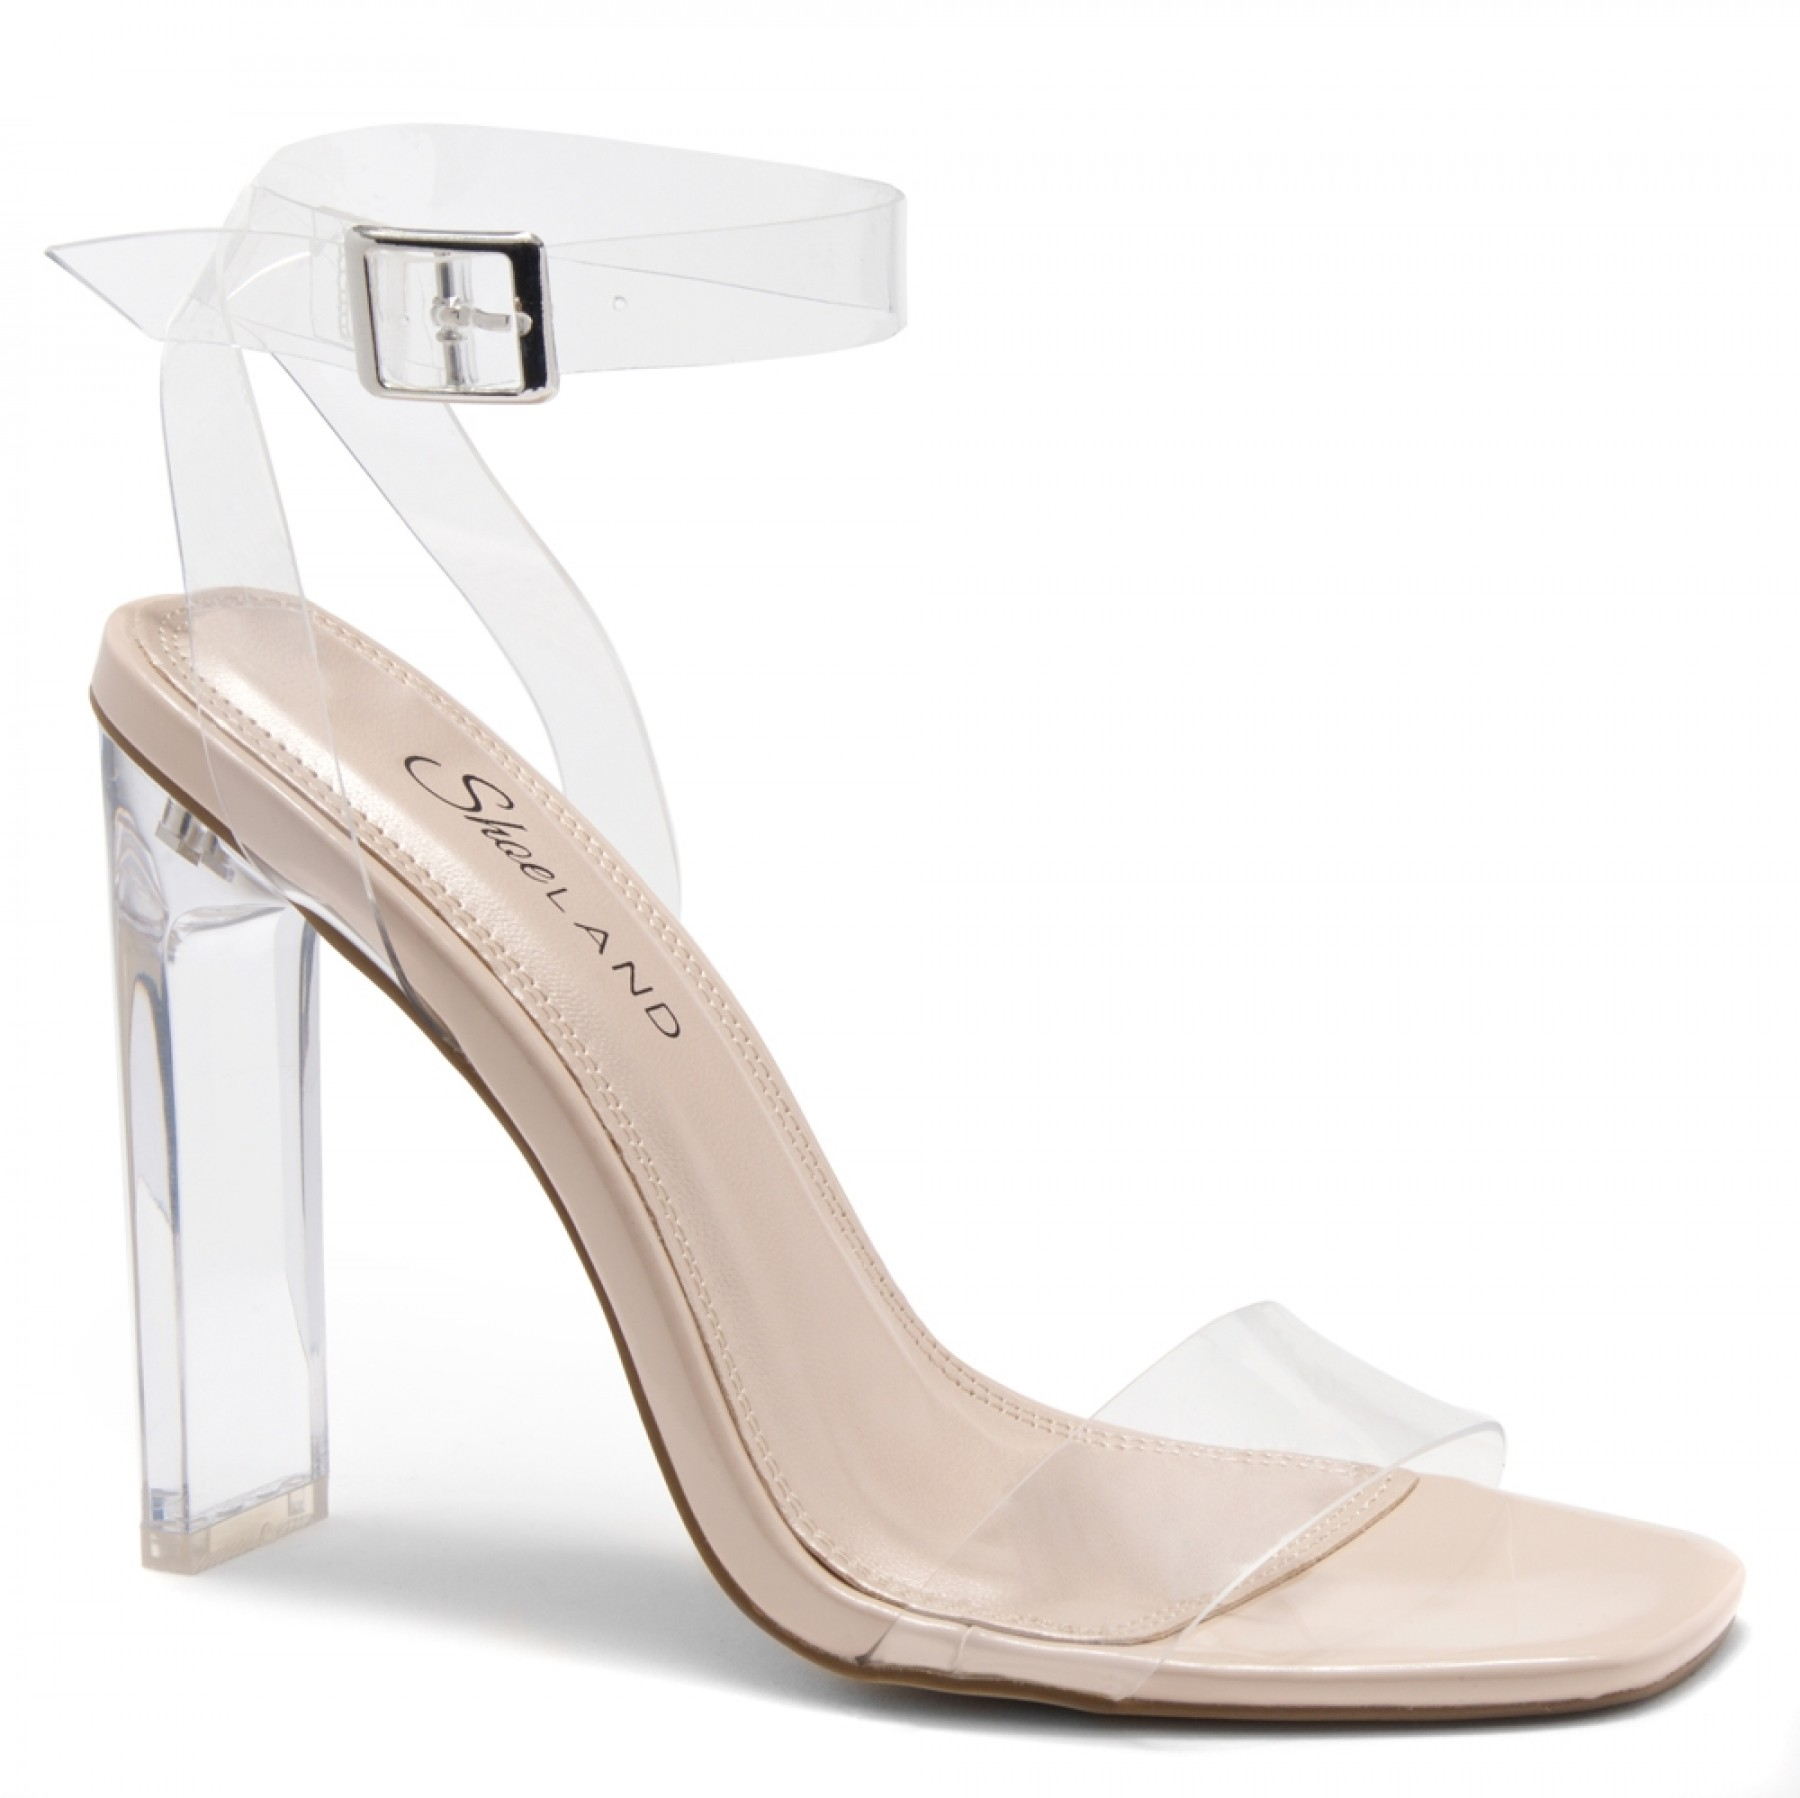 Shoe Land SL-Cllaary Perspex heel, ankle strap with an adjustable buckle (2010/ClearNude)